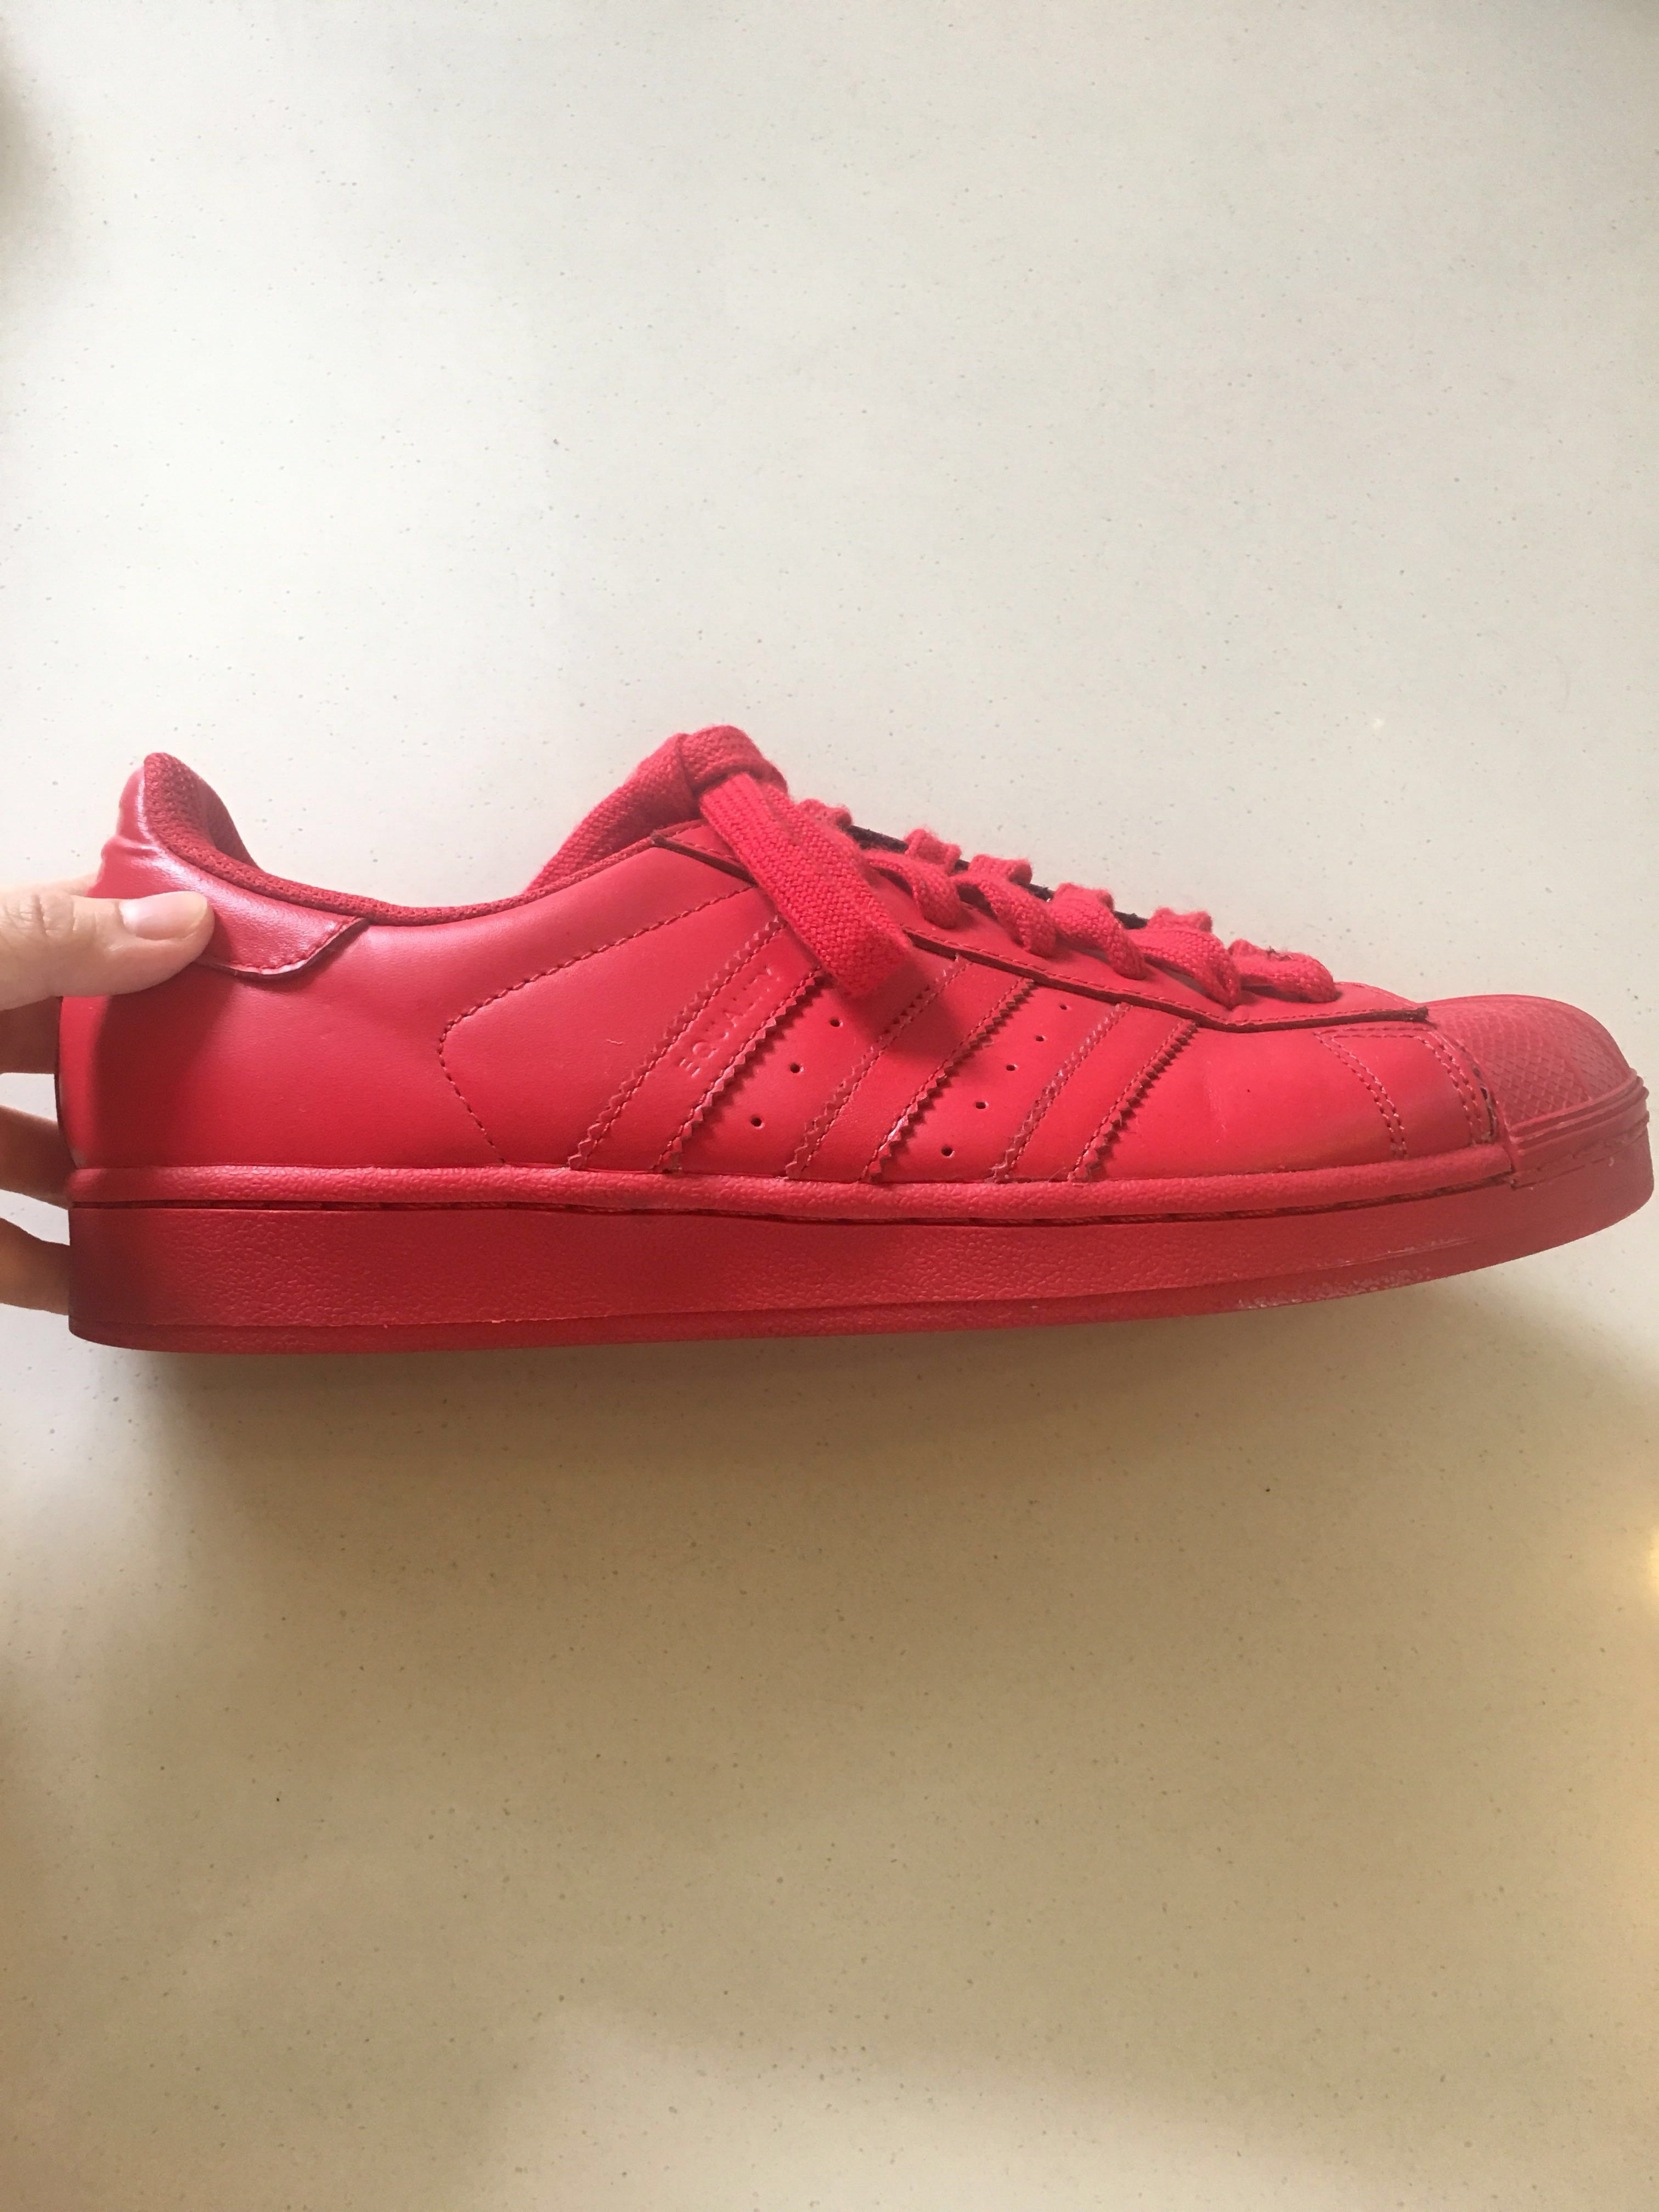 best service 9598b 1dfe0 Adidas Equality Red